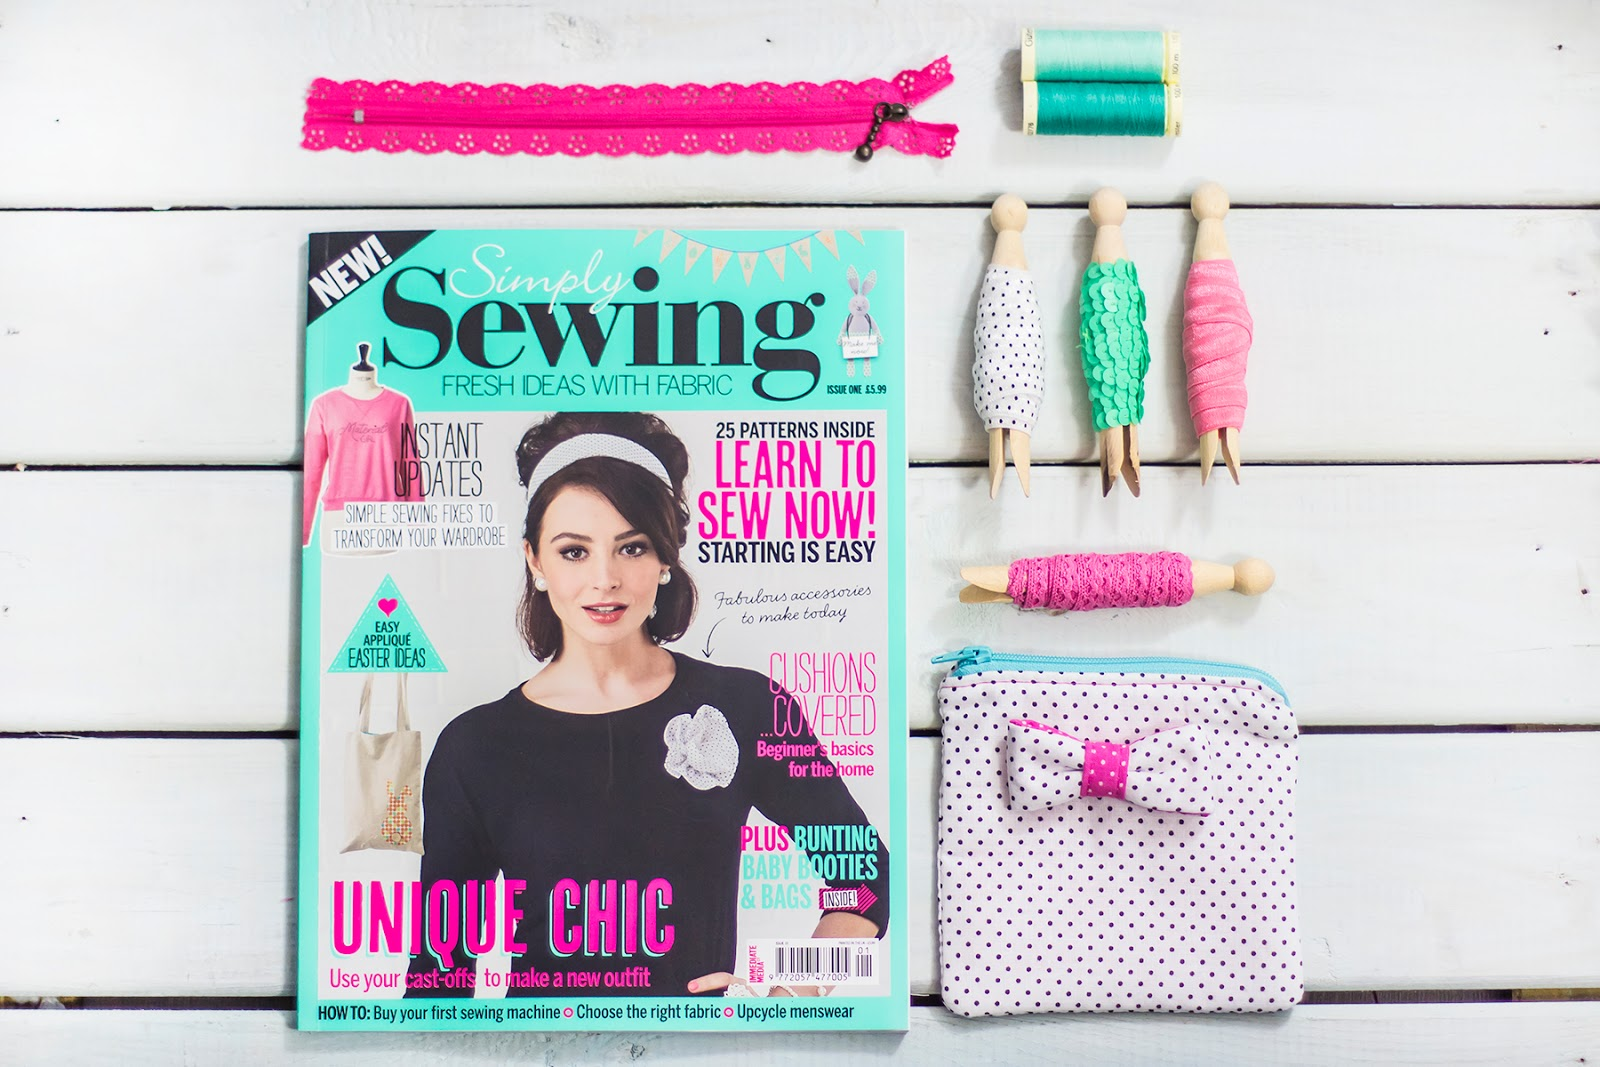 Live it love it make it february 2015 i have a quick question for you is there room on the heaving shelves of the craft section in your newsagent for yet another sewing magazine jeuxipadfo Image collections